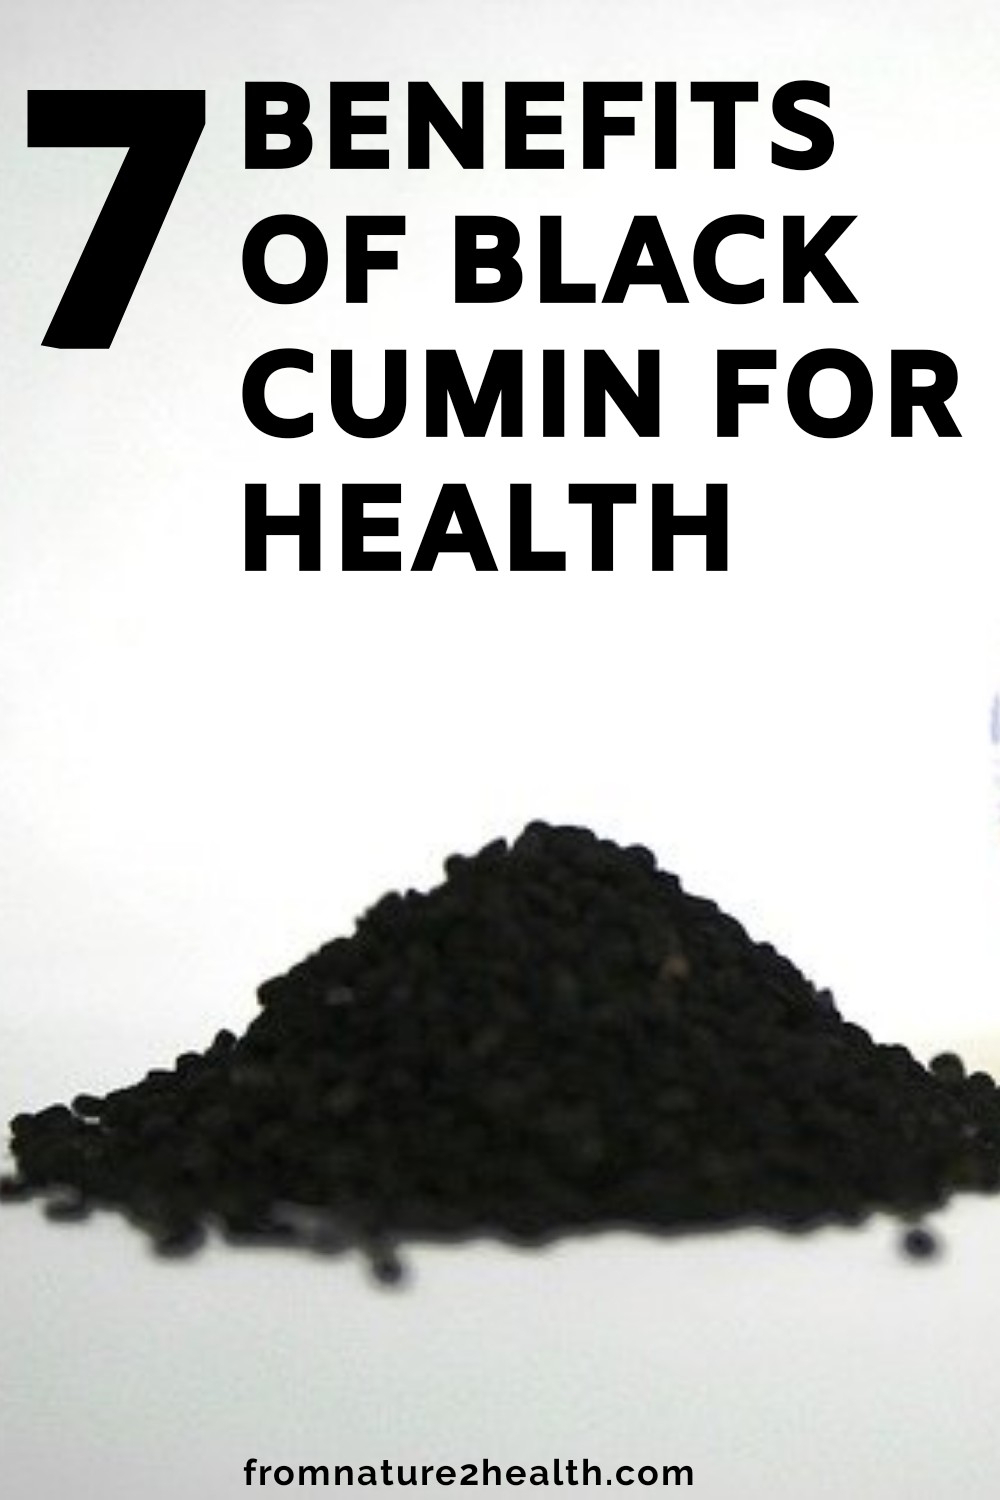 Benefits of Black Cumin for Allergy, Asthma, Diabetes, Fertility, Skin